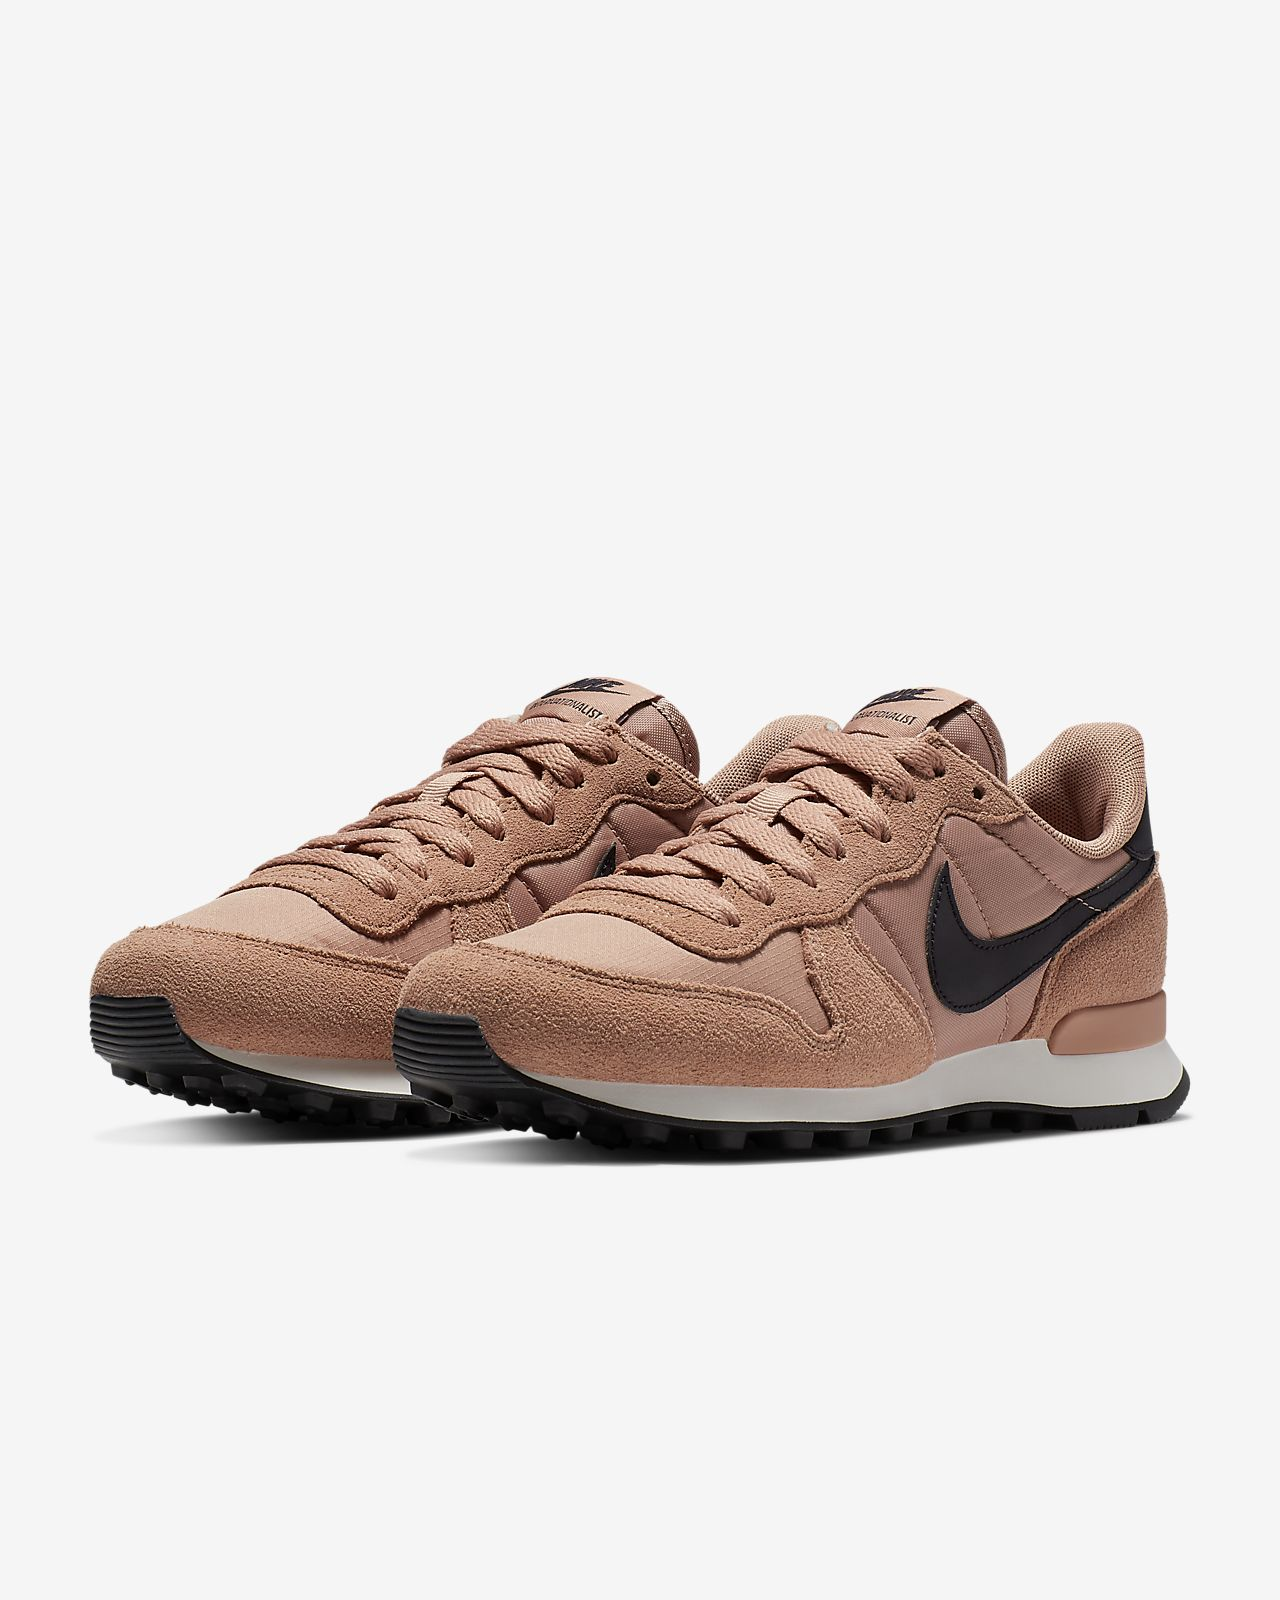 brand new acbbf da4f9 Low Resolution Chaussure Nike Internationalist pour Femme Chaussure Nike  Internationalist pour Femme